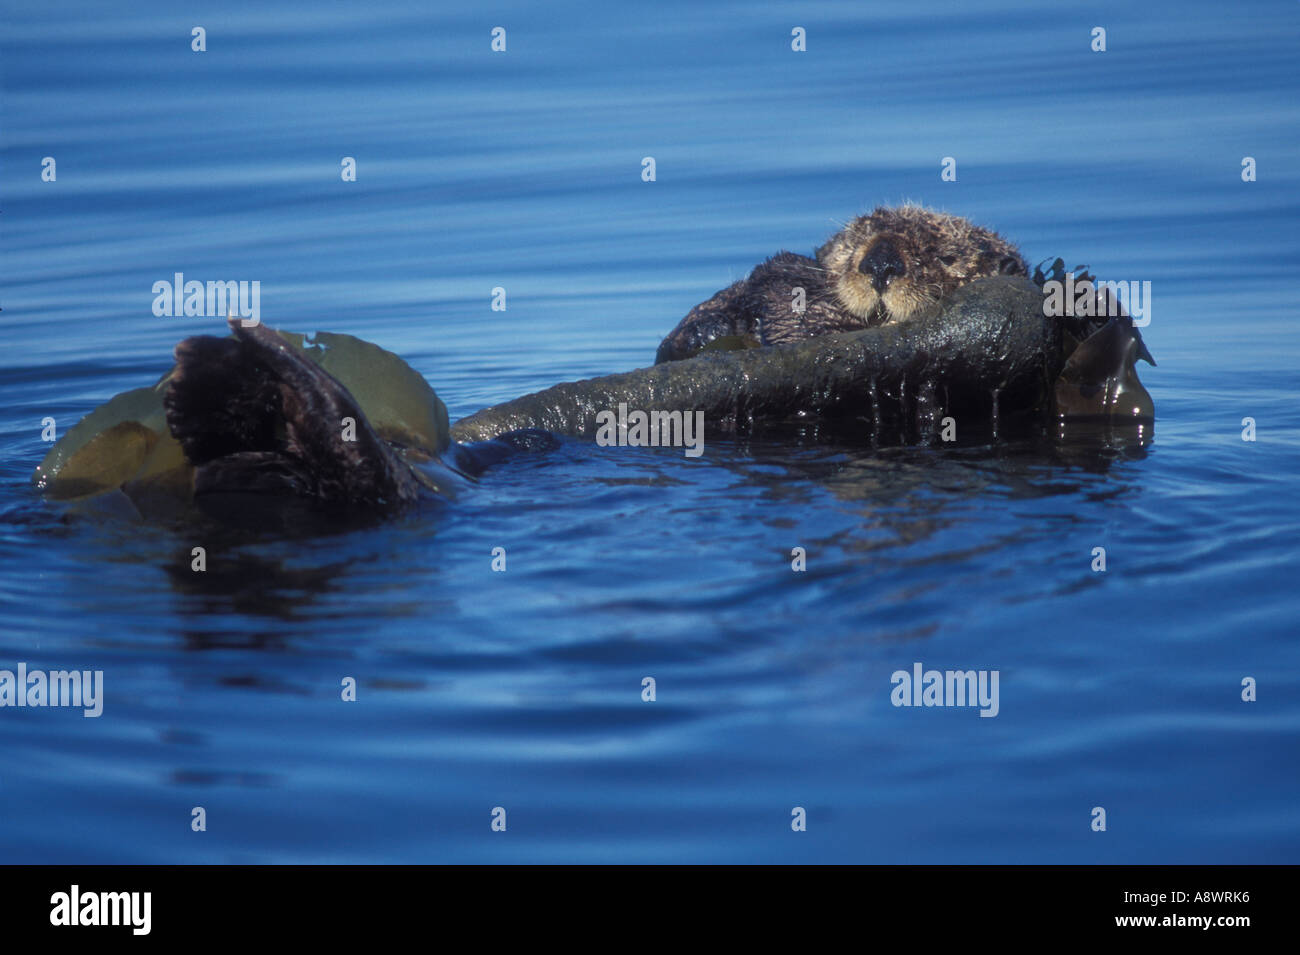 Seaotter Enhydra lutris wrapped in kelp drifting and resting in Kachemak Bay Alaska Stock Photo